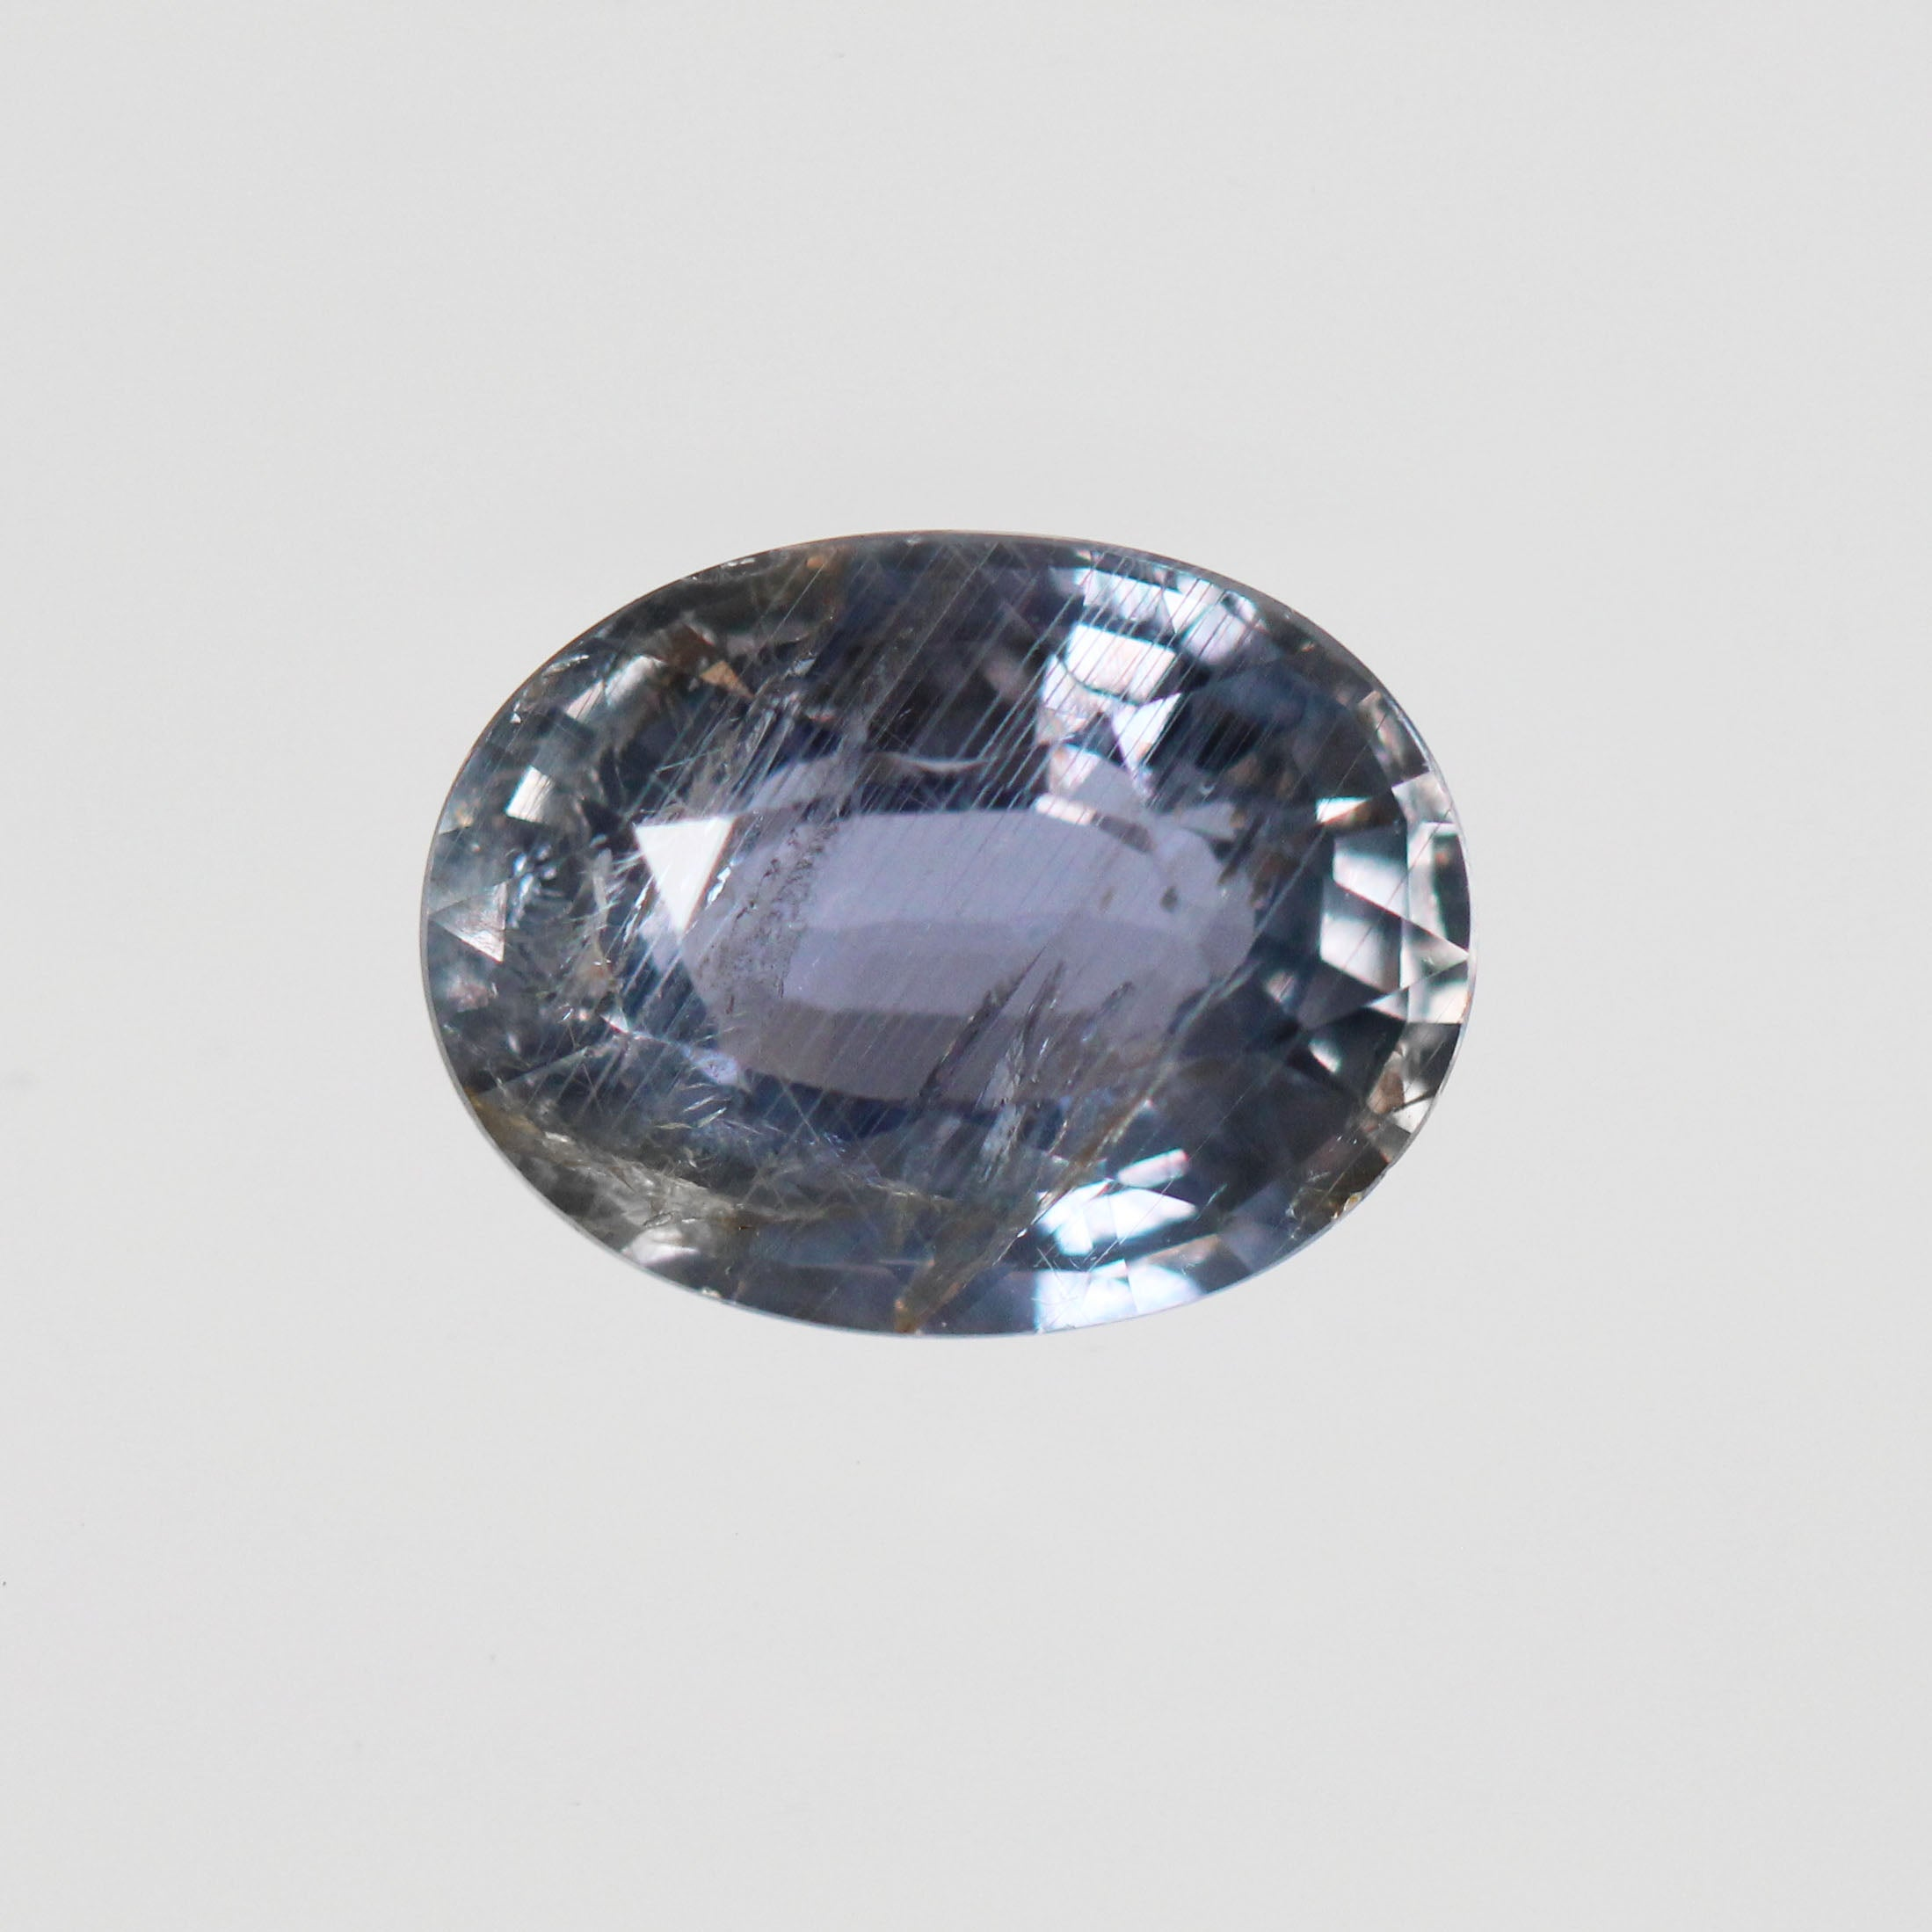 5.43 Carat Oval Sapphire for Custom Work - Inventory Code OBSAP543 - Midwinter Co. Alternative Bridal Rings and Modern Fine Jewelry